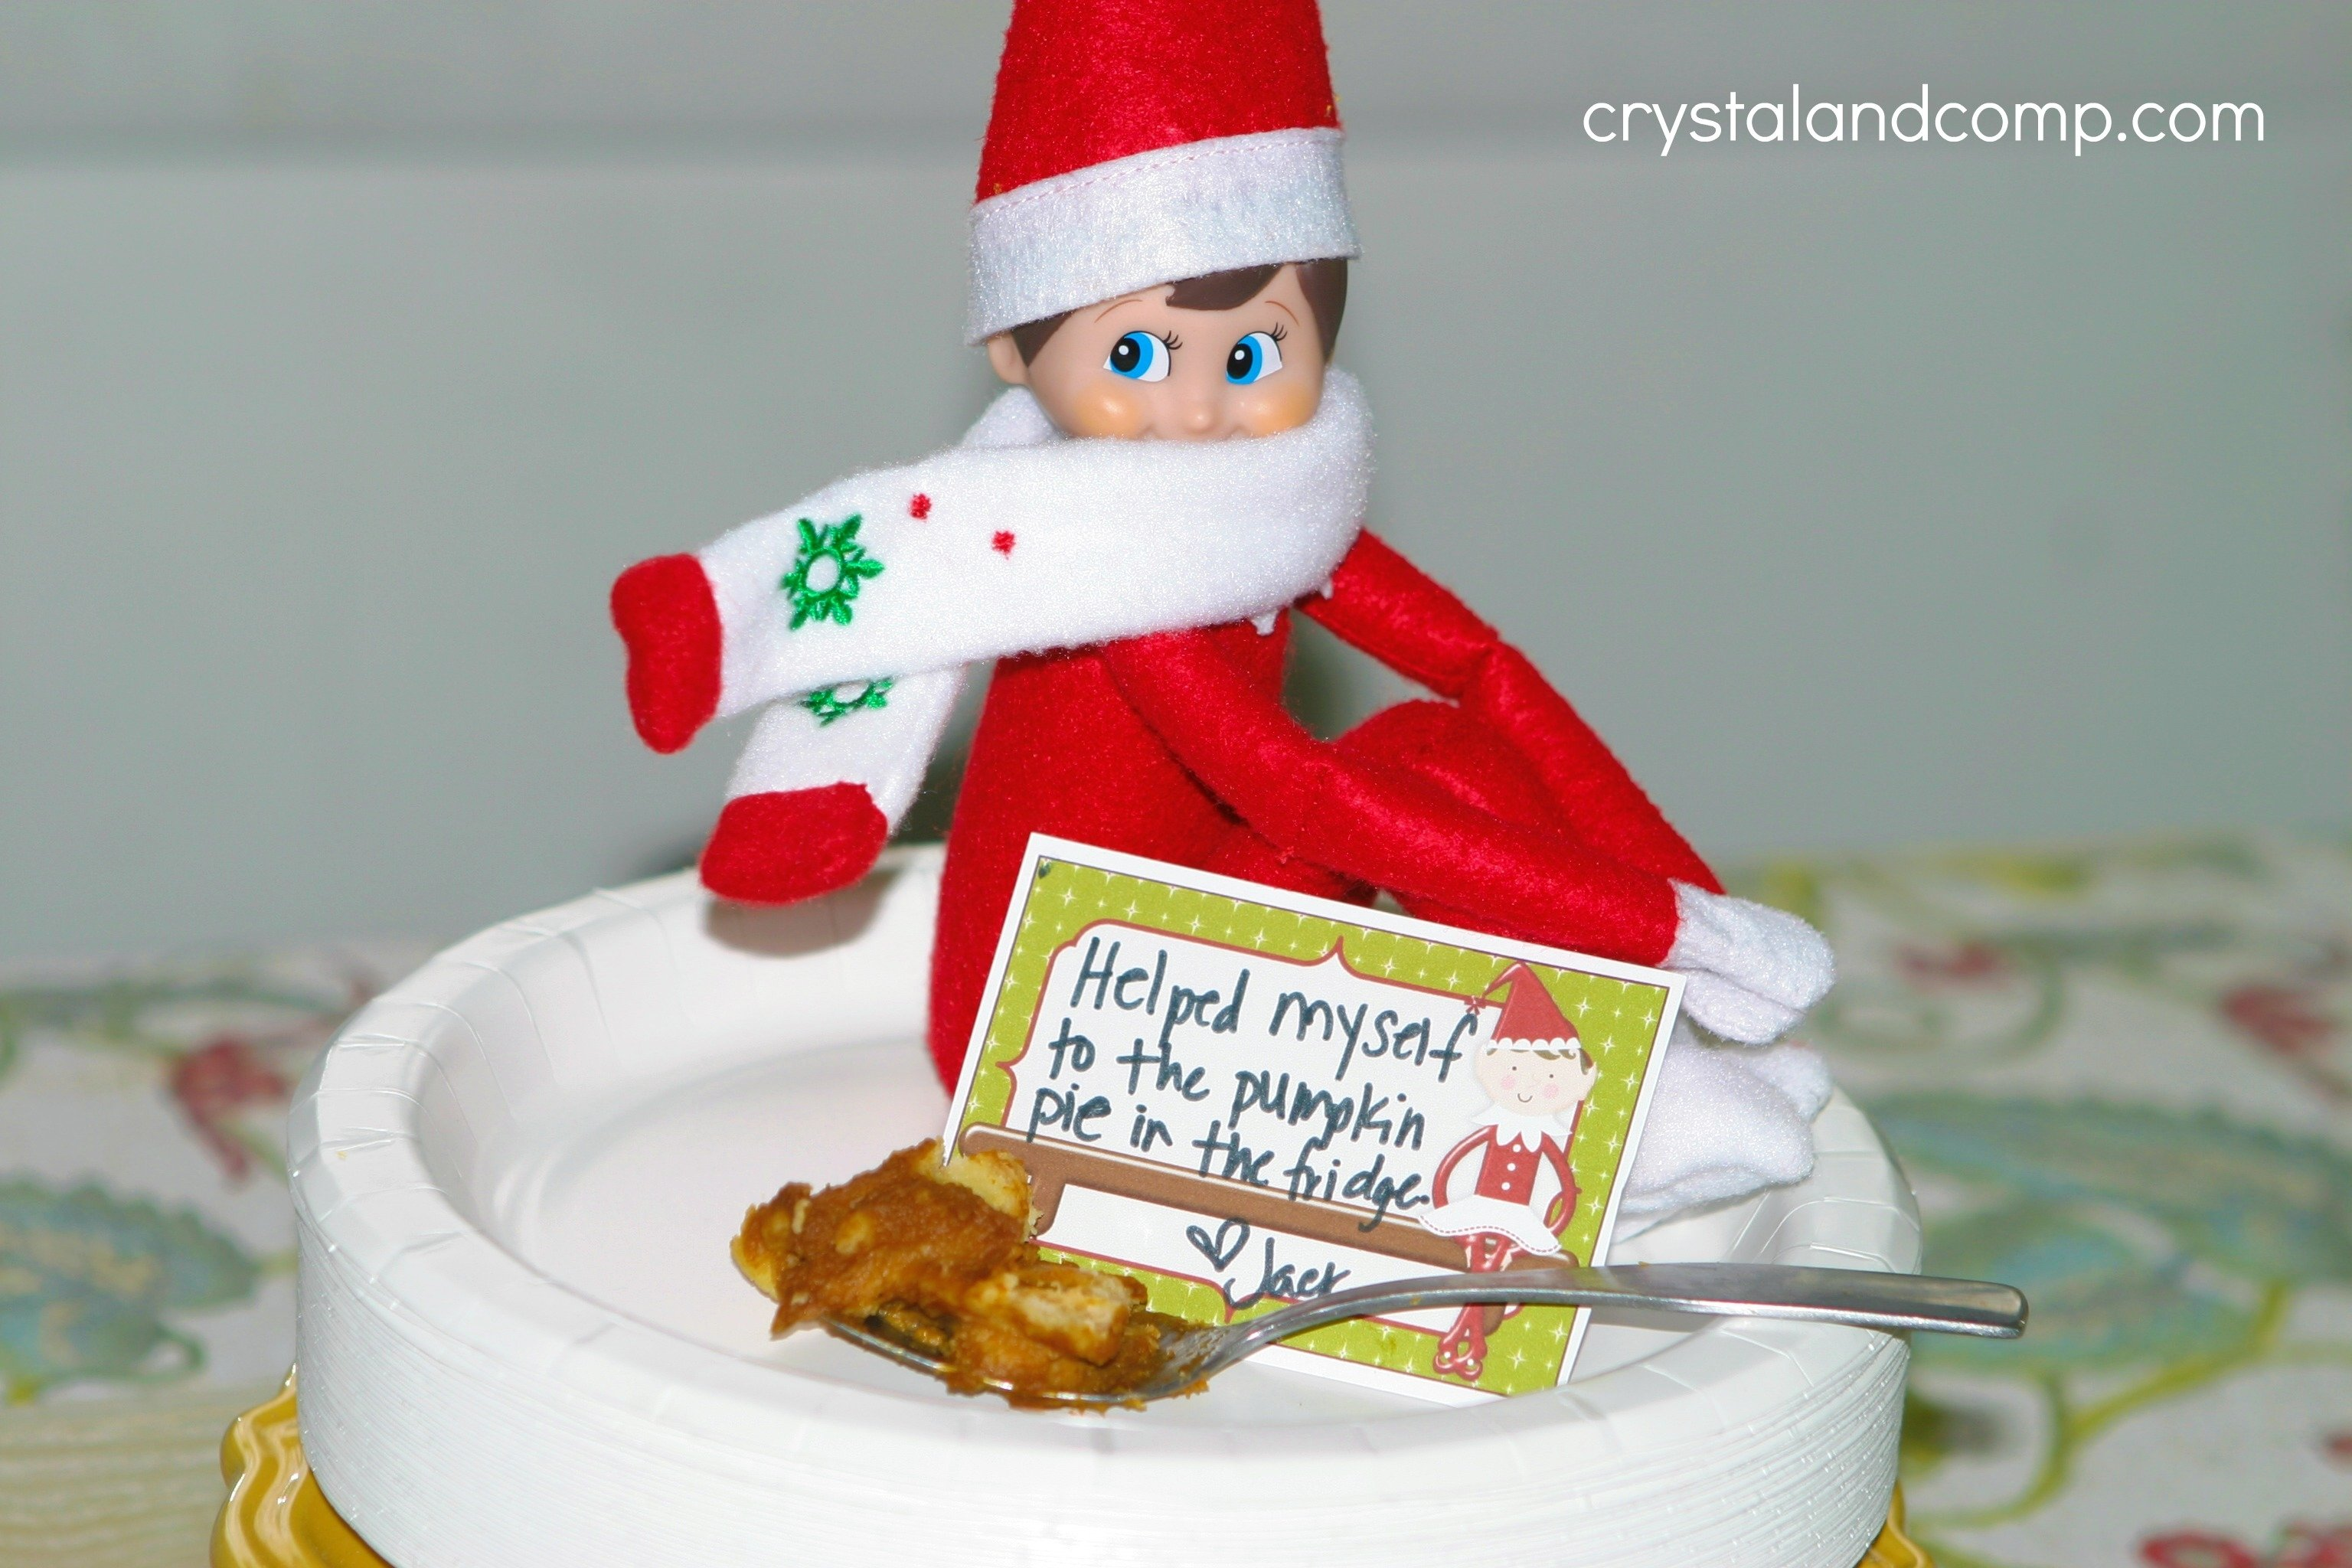 10 Stylish Elf On A Shelf Idea elf on the shelf ideas eat leftover pumpkin pie 2021